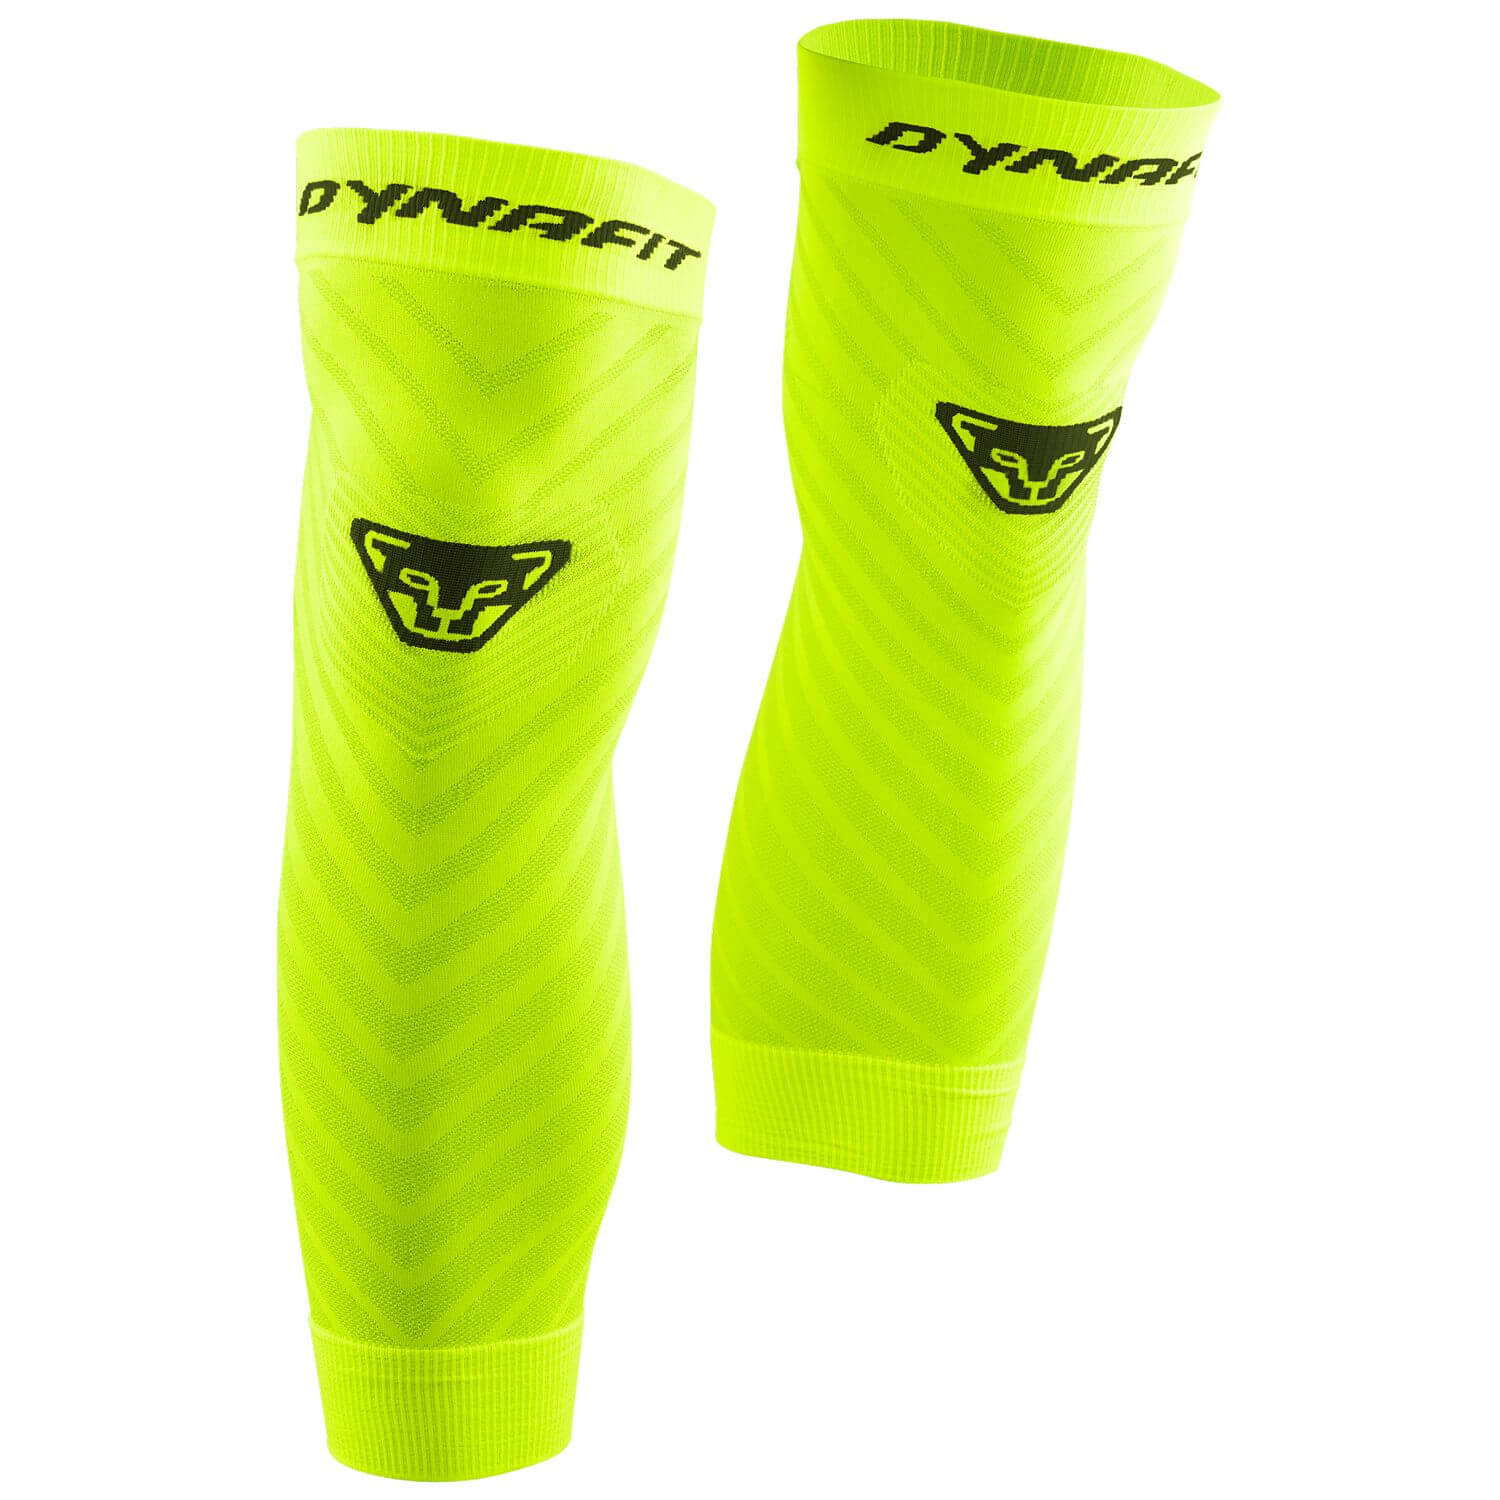 Dynafit Ultra Kneeguard fluo yellow